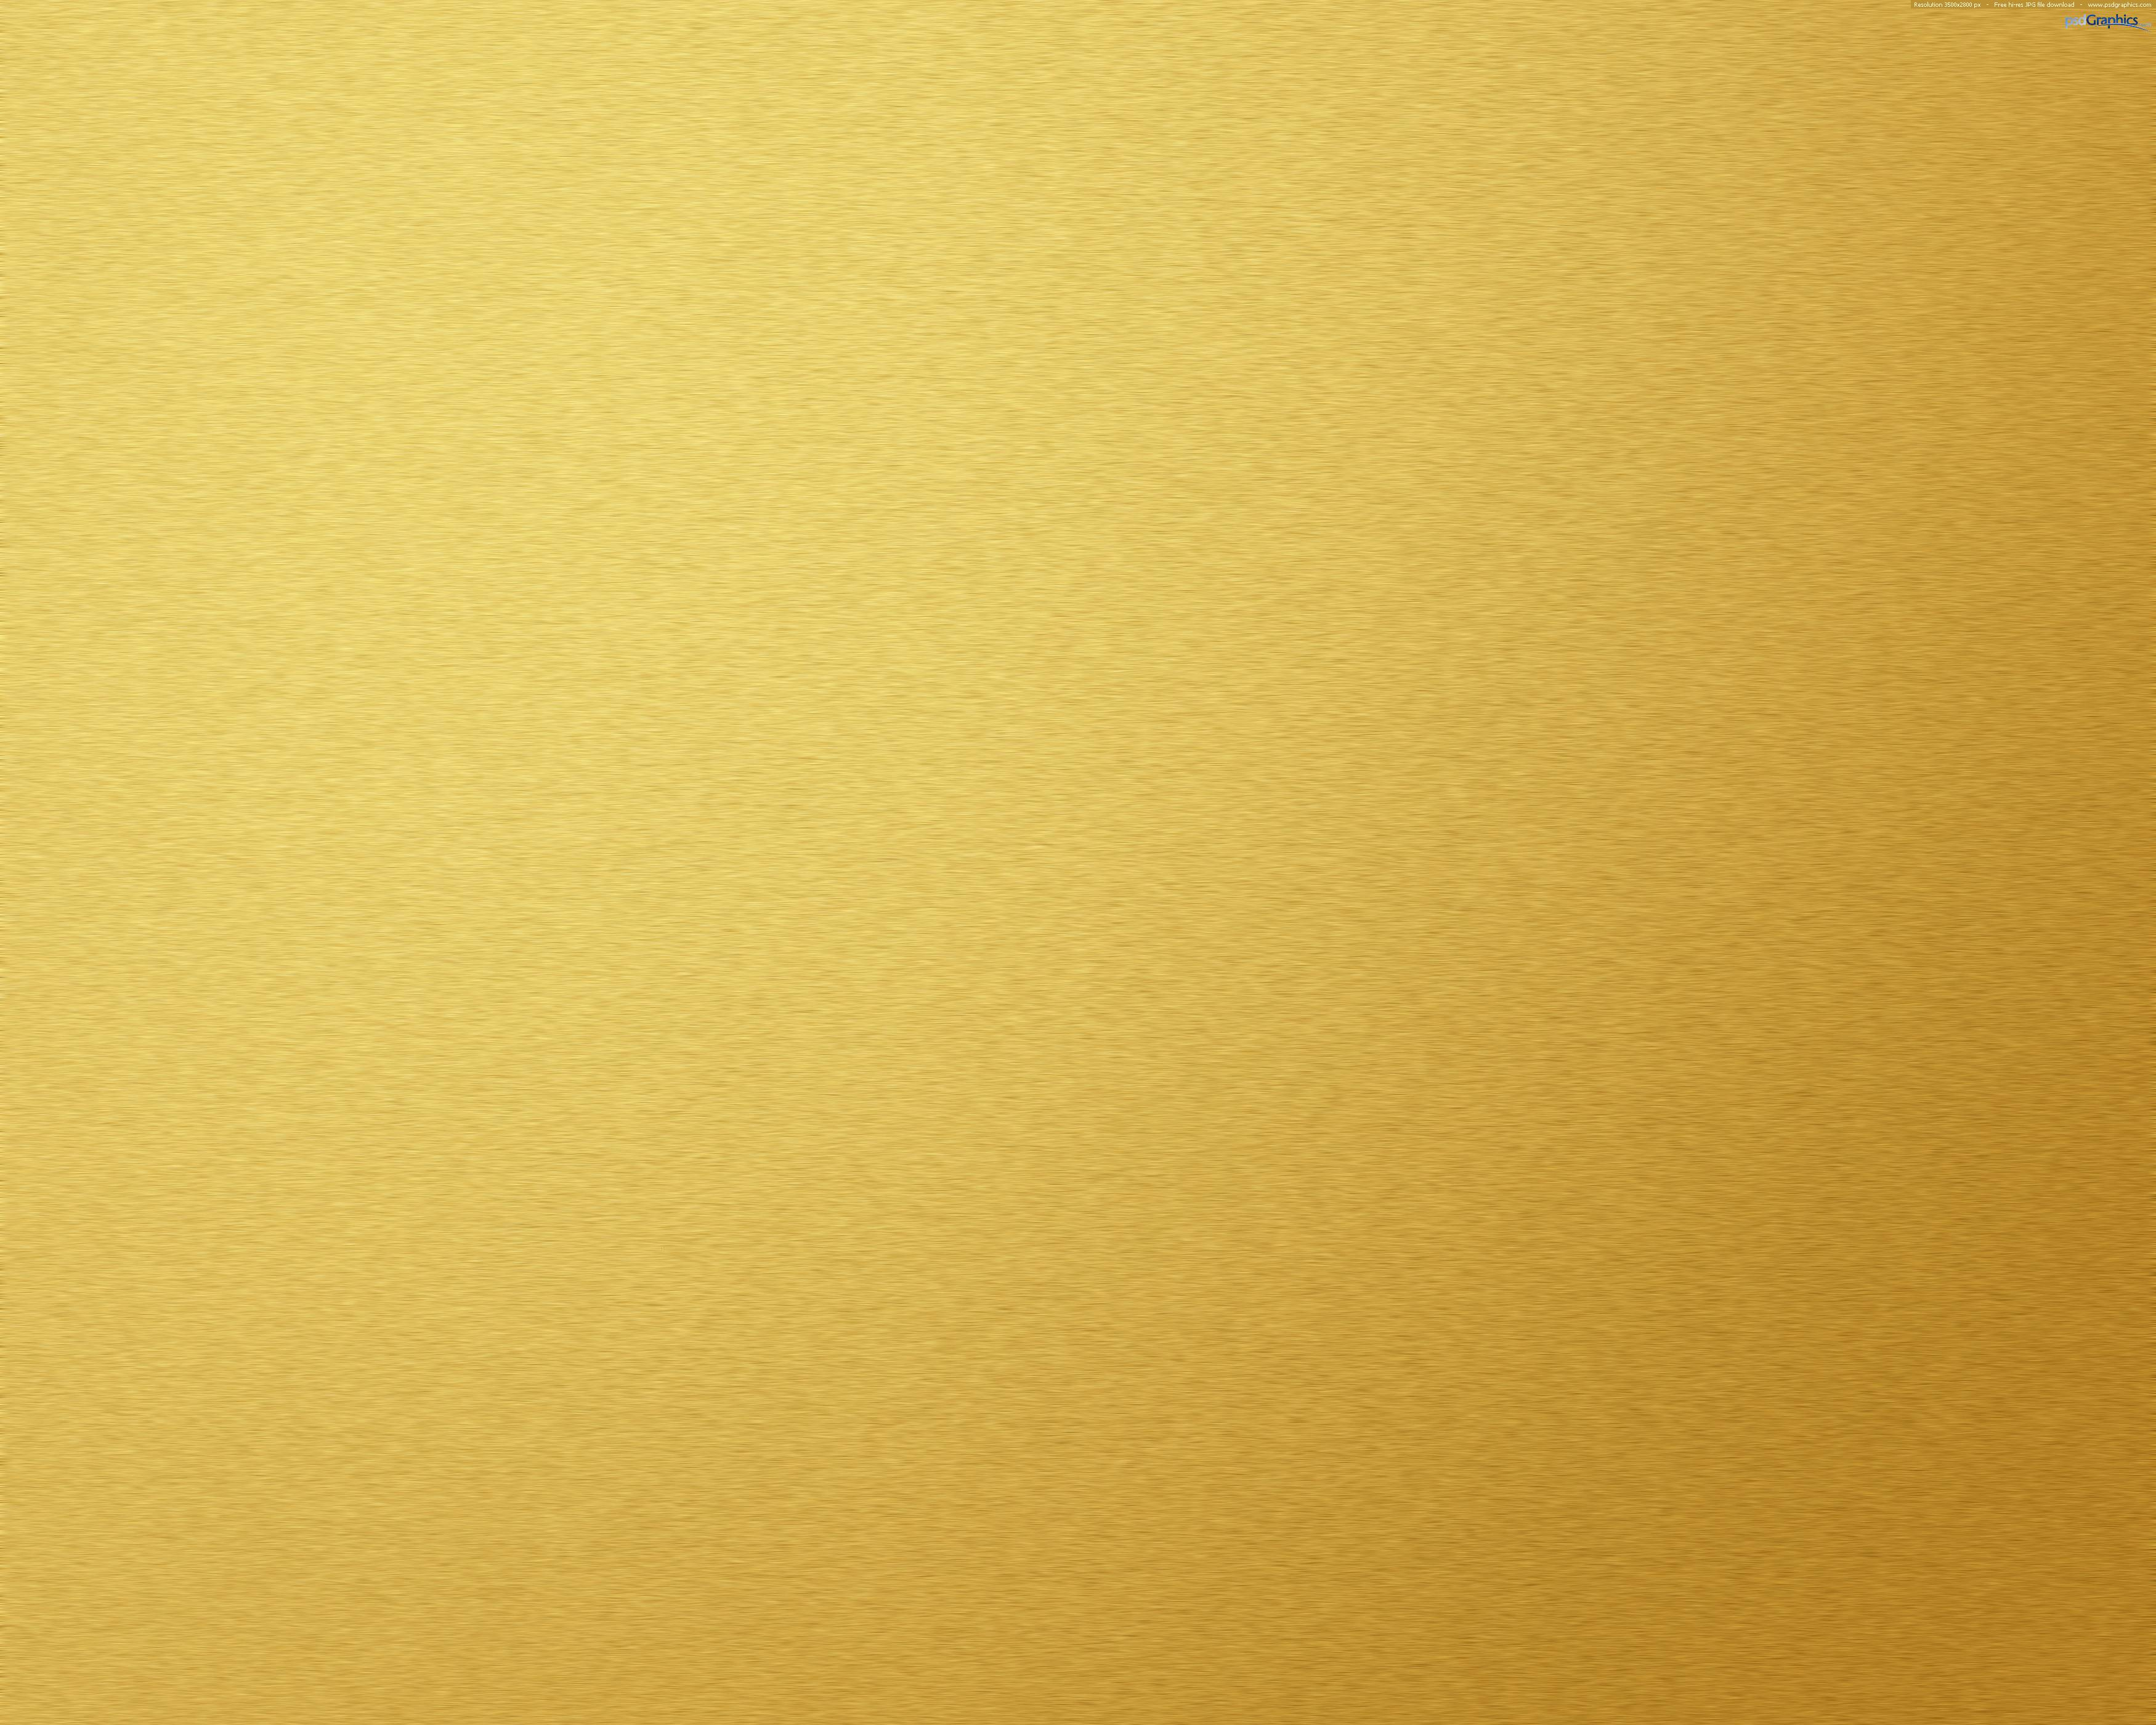 Gold backgrounds wallpaper cave - Gold desktop background ...